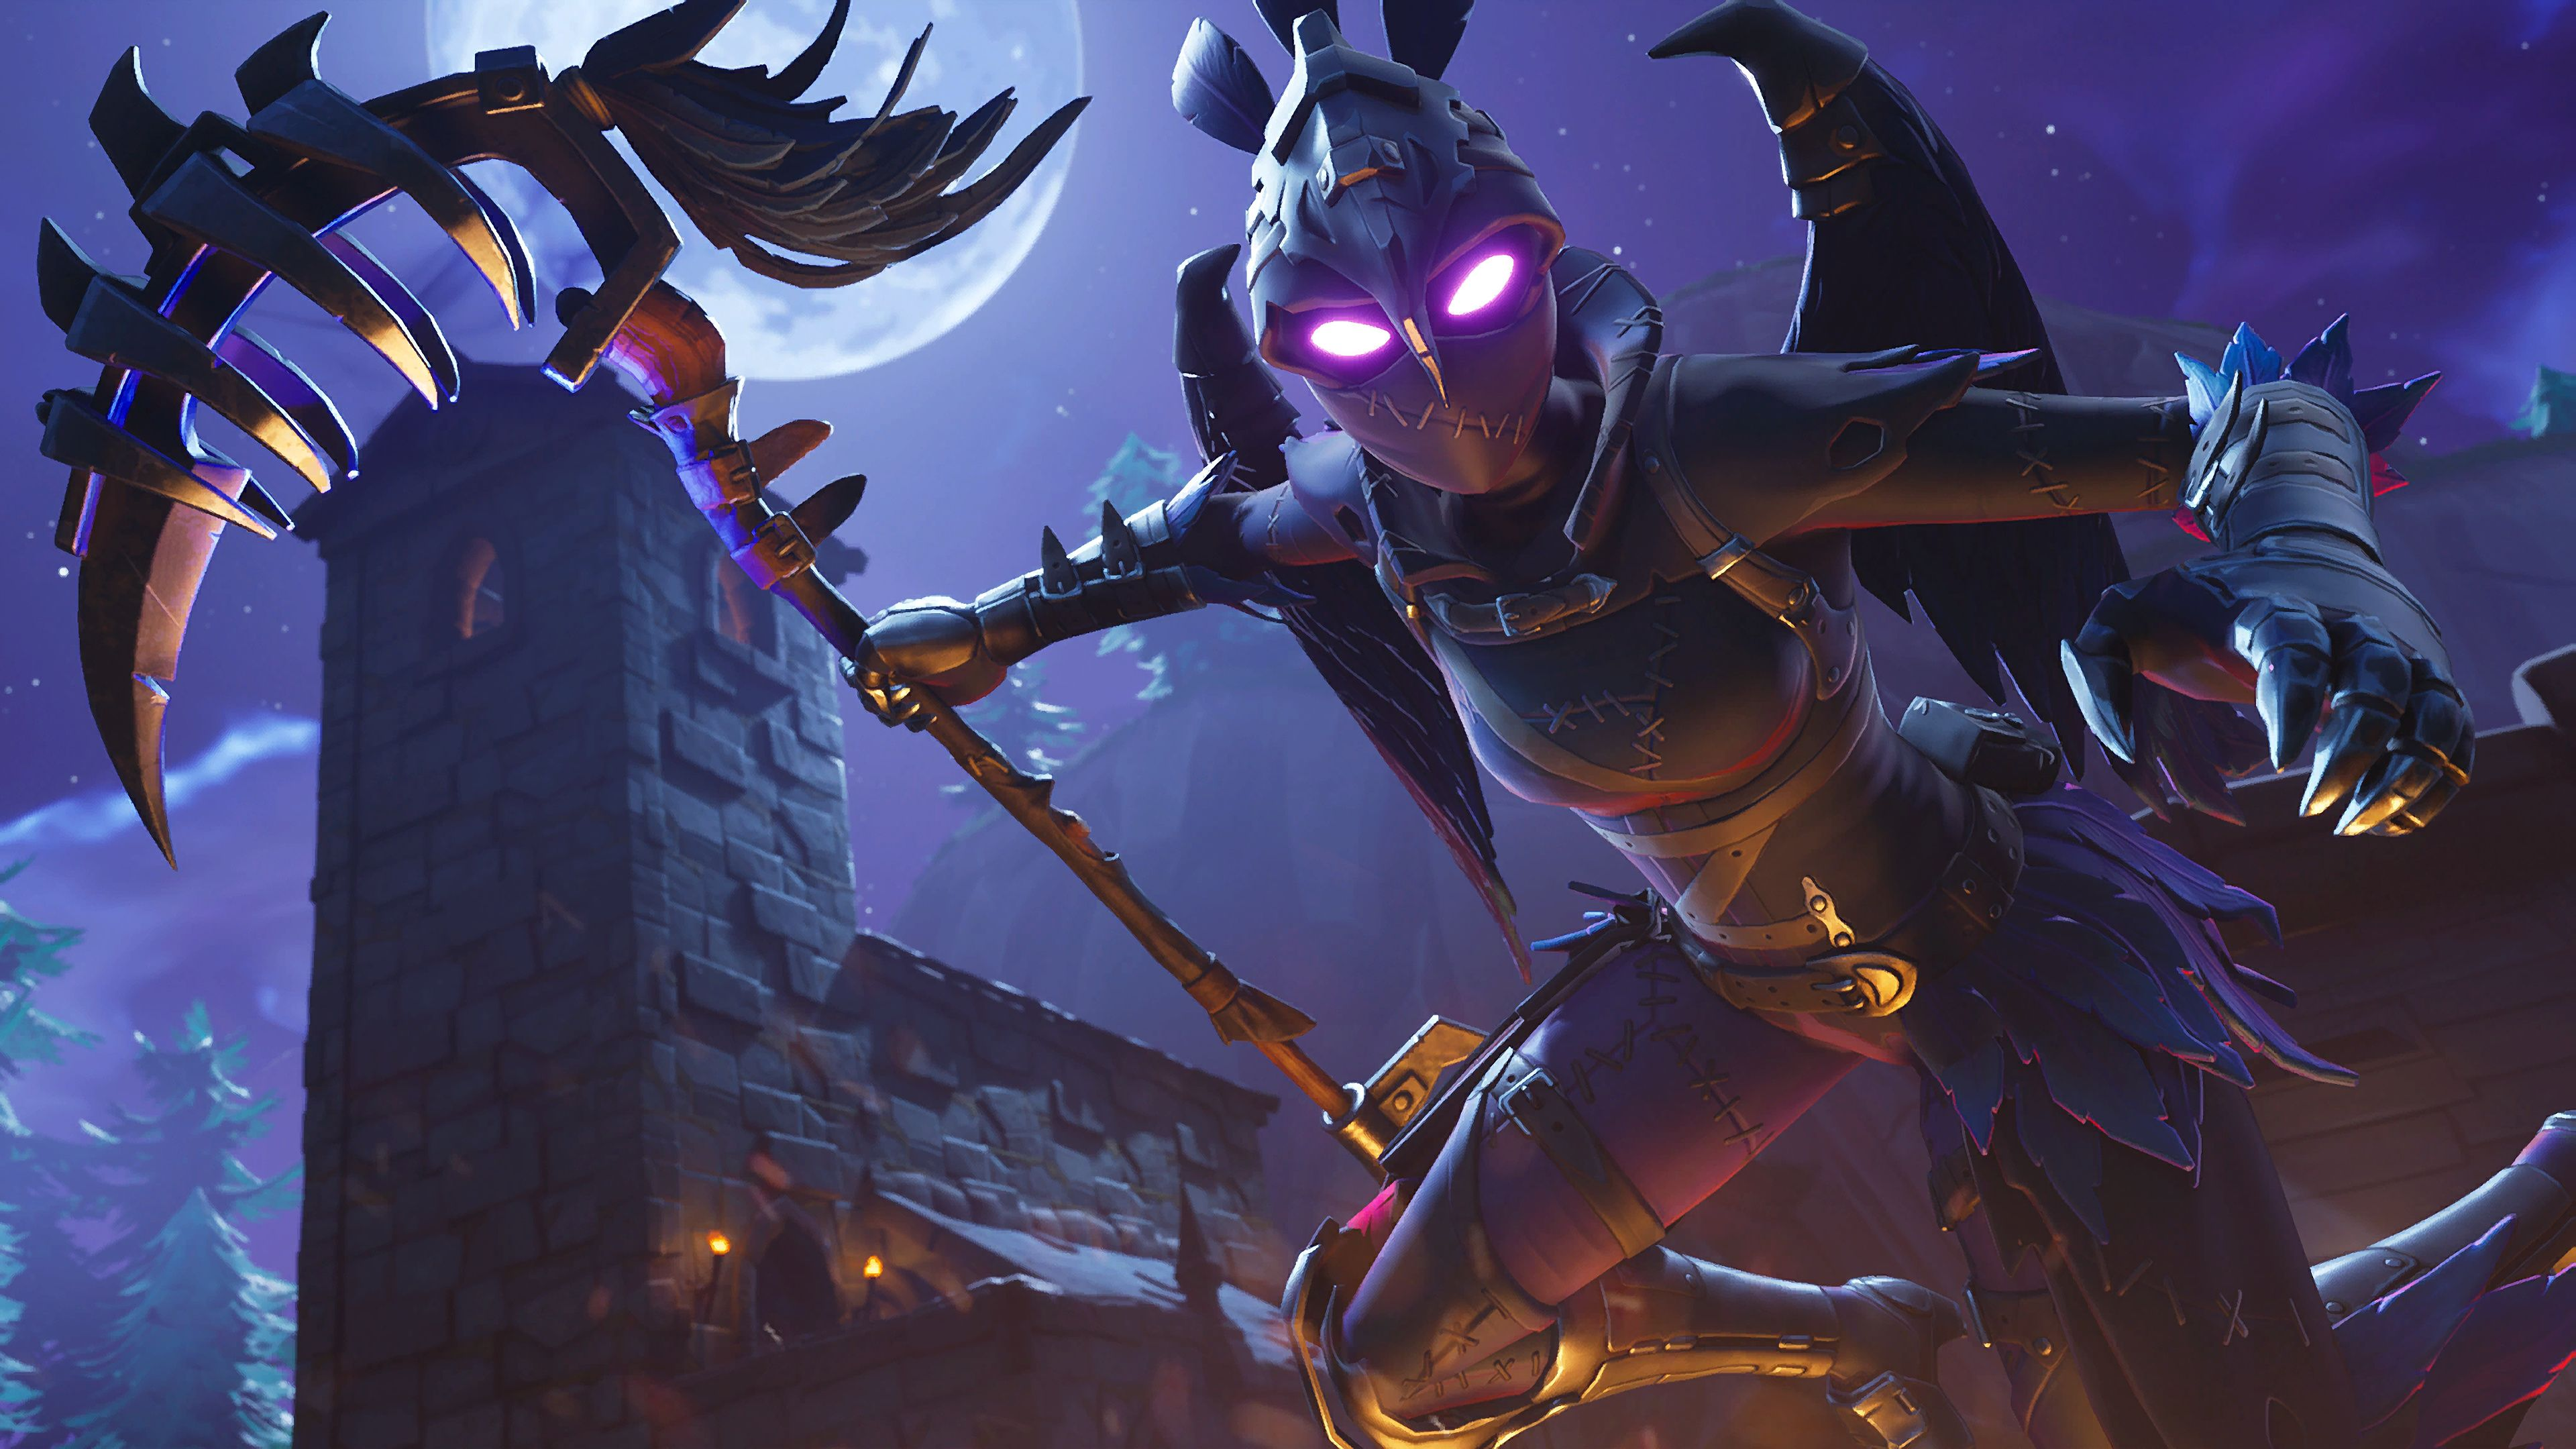 Ravage Fortnite Battle Royale Season 6 4k Ps Games Wallpapers Hd Wallpapers Games Wallpapers Fortnite Wallpapers Fo Hd Wallpaper Background Images Fortnite